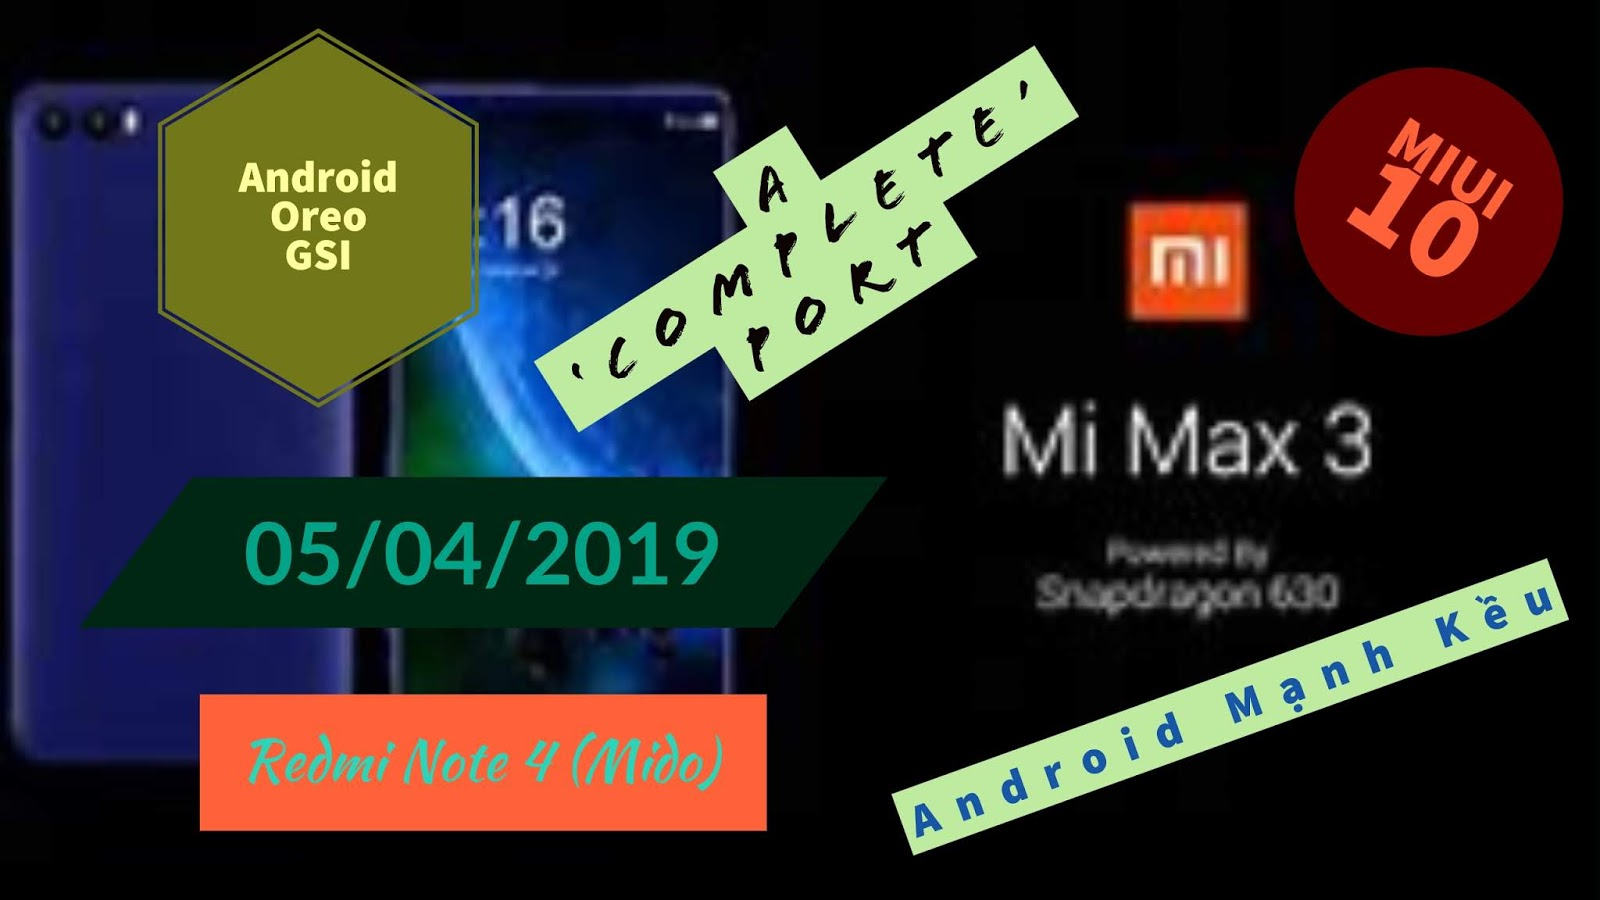 MIUI 10 Oreo GSI - 05/04/2019 - Redmi Note 4 (Mido) by Android Mạnh